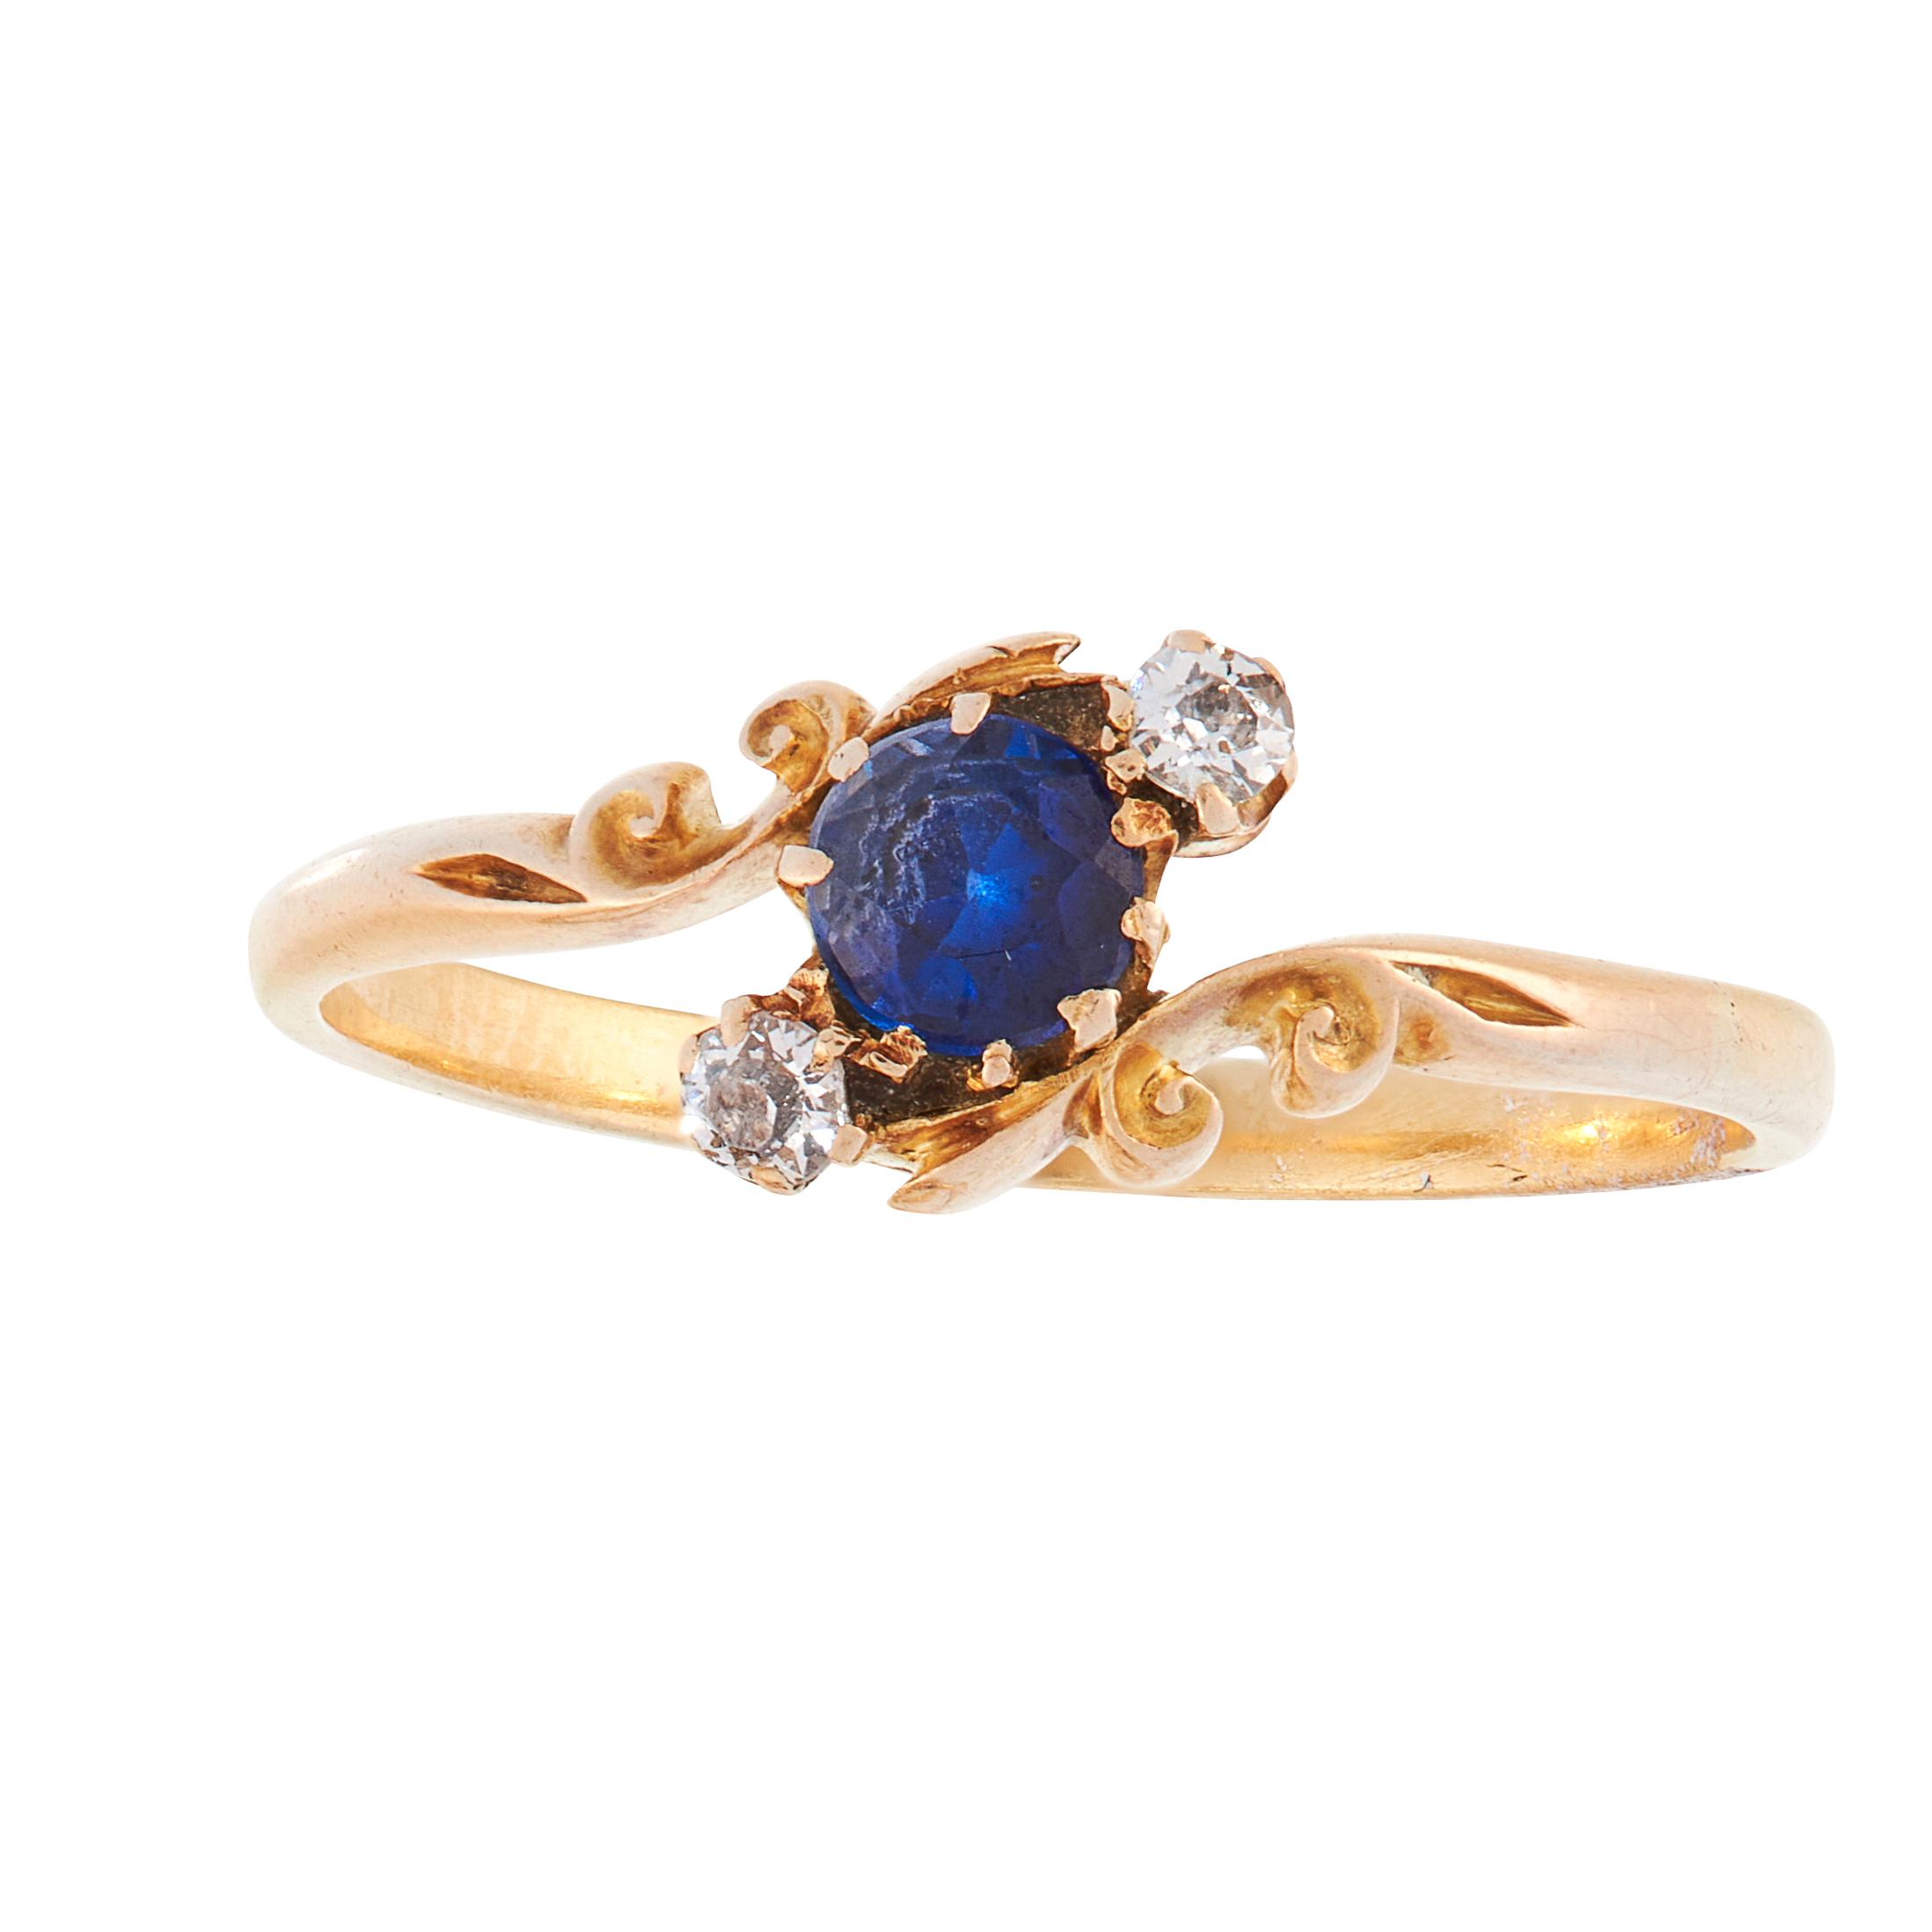 AN ANTIQUE VICTORIAN SAPPHIRE AND DIAMOND DRESS RING, 1894 in 15ct yellow gold, set with a trio of